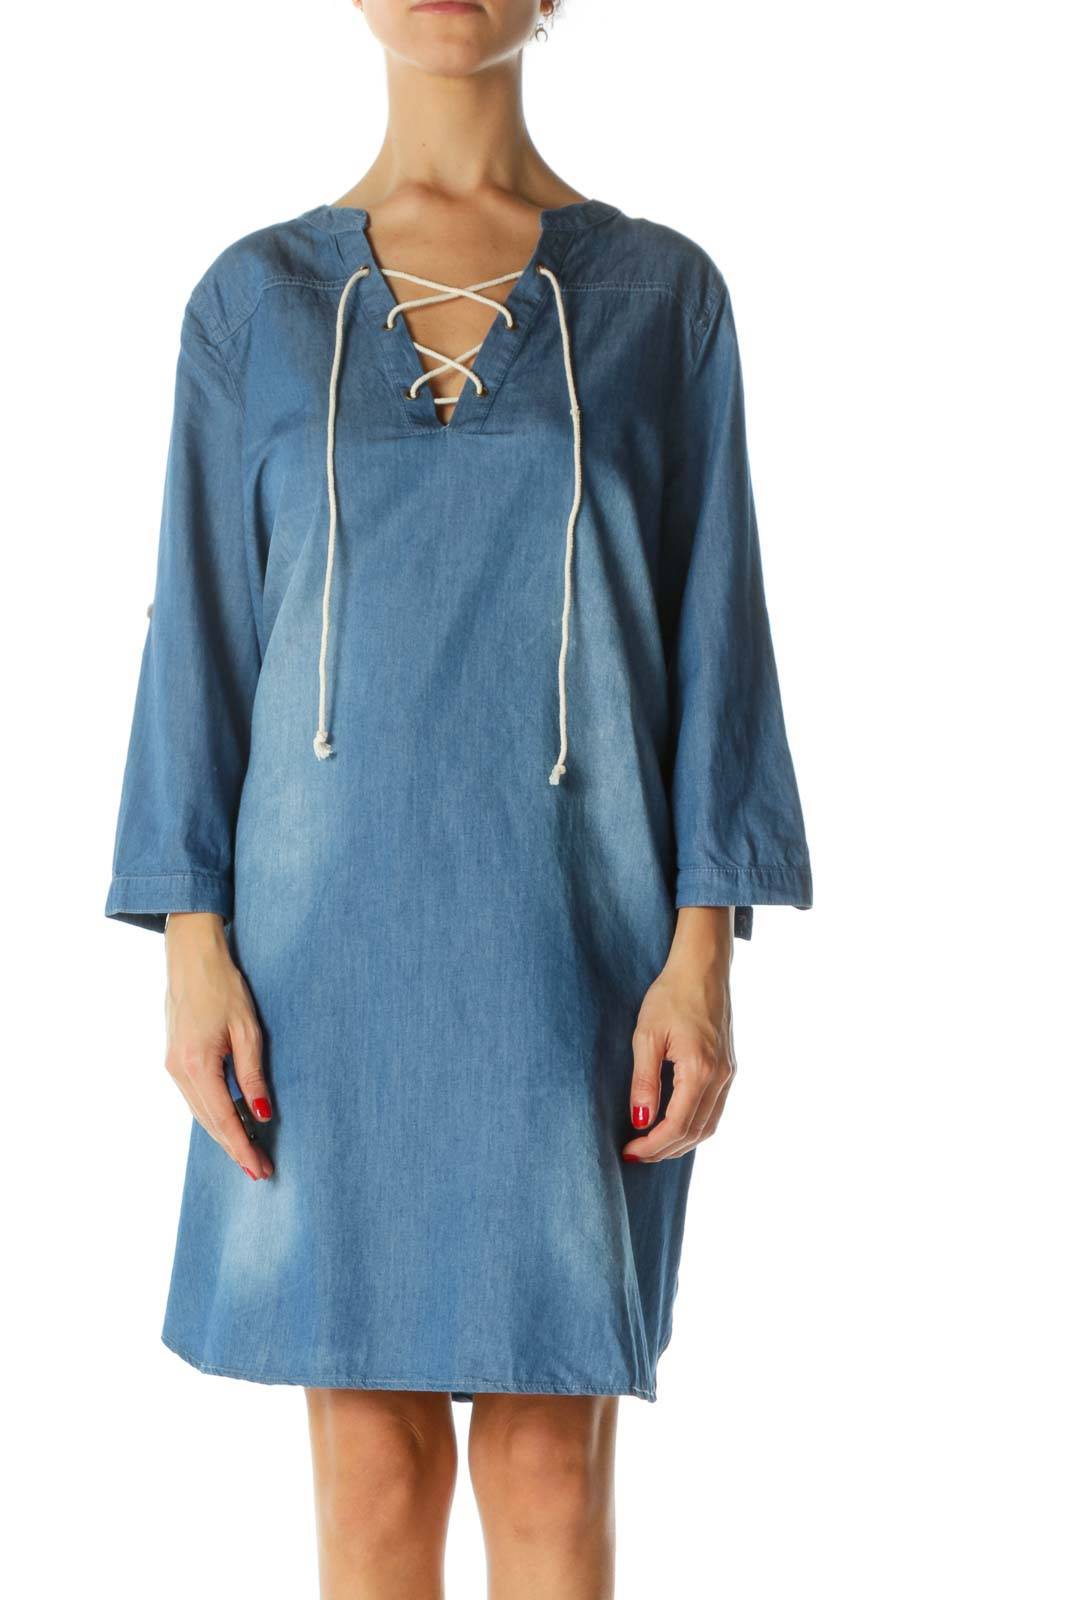 Blue Medium-Wash 3/4-Roll-Up-Sleeves Denim-Look Crisscross Day Dress